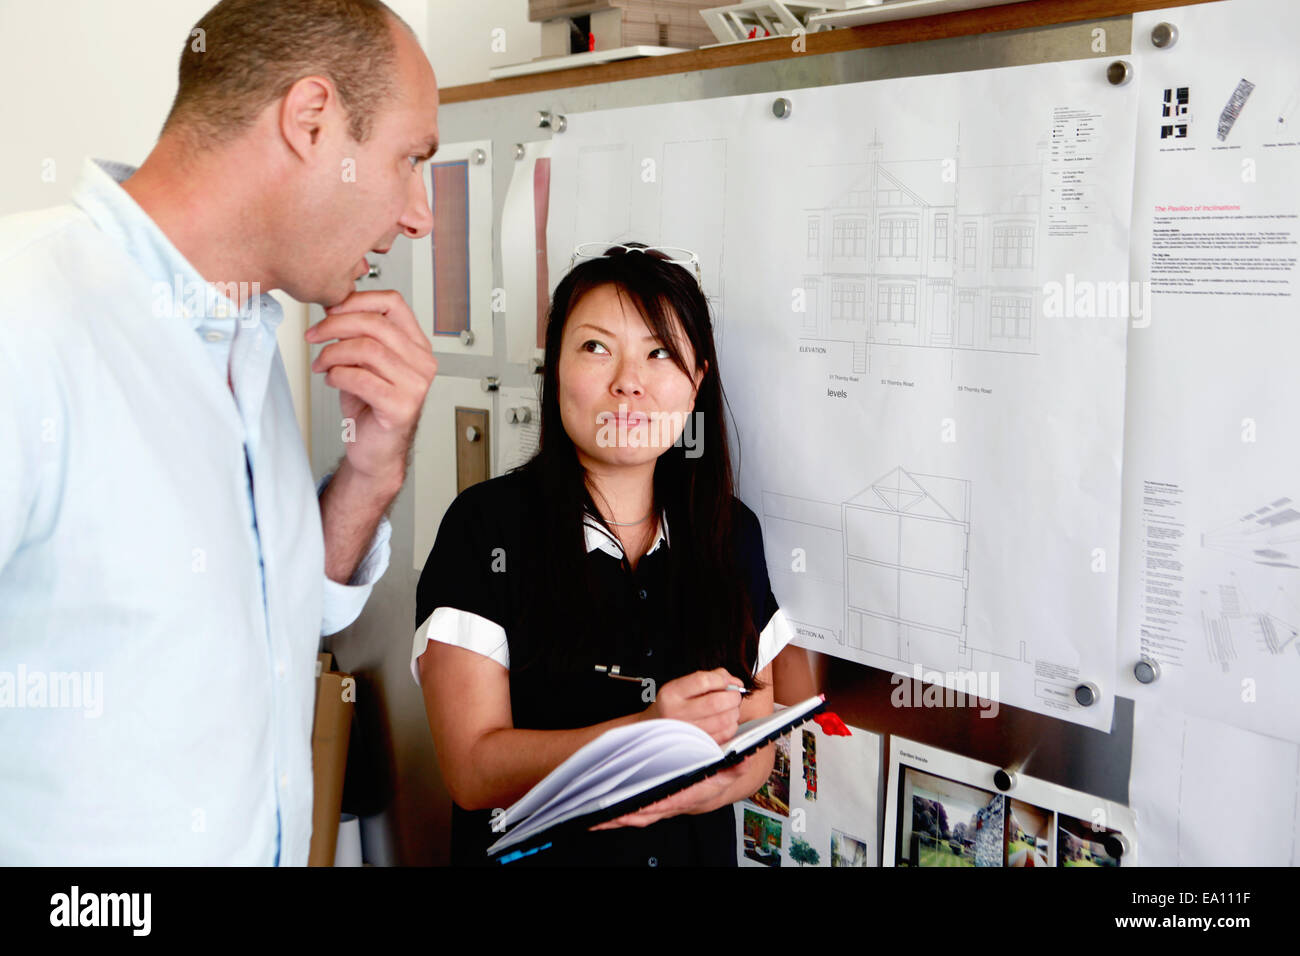 Male and female architects looking at blueprints in office Stock Photo